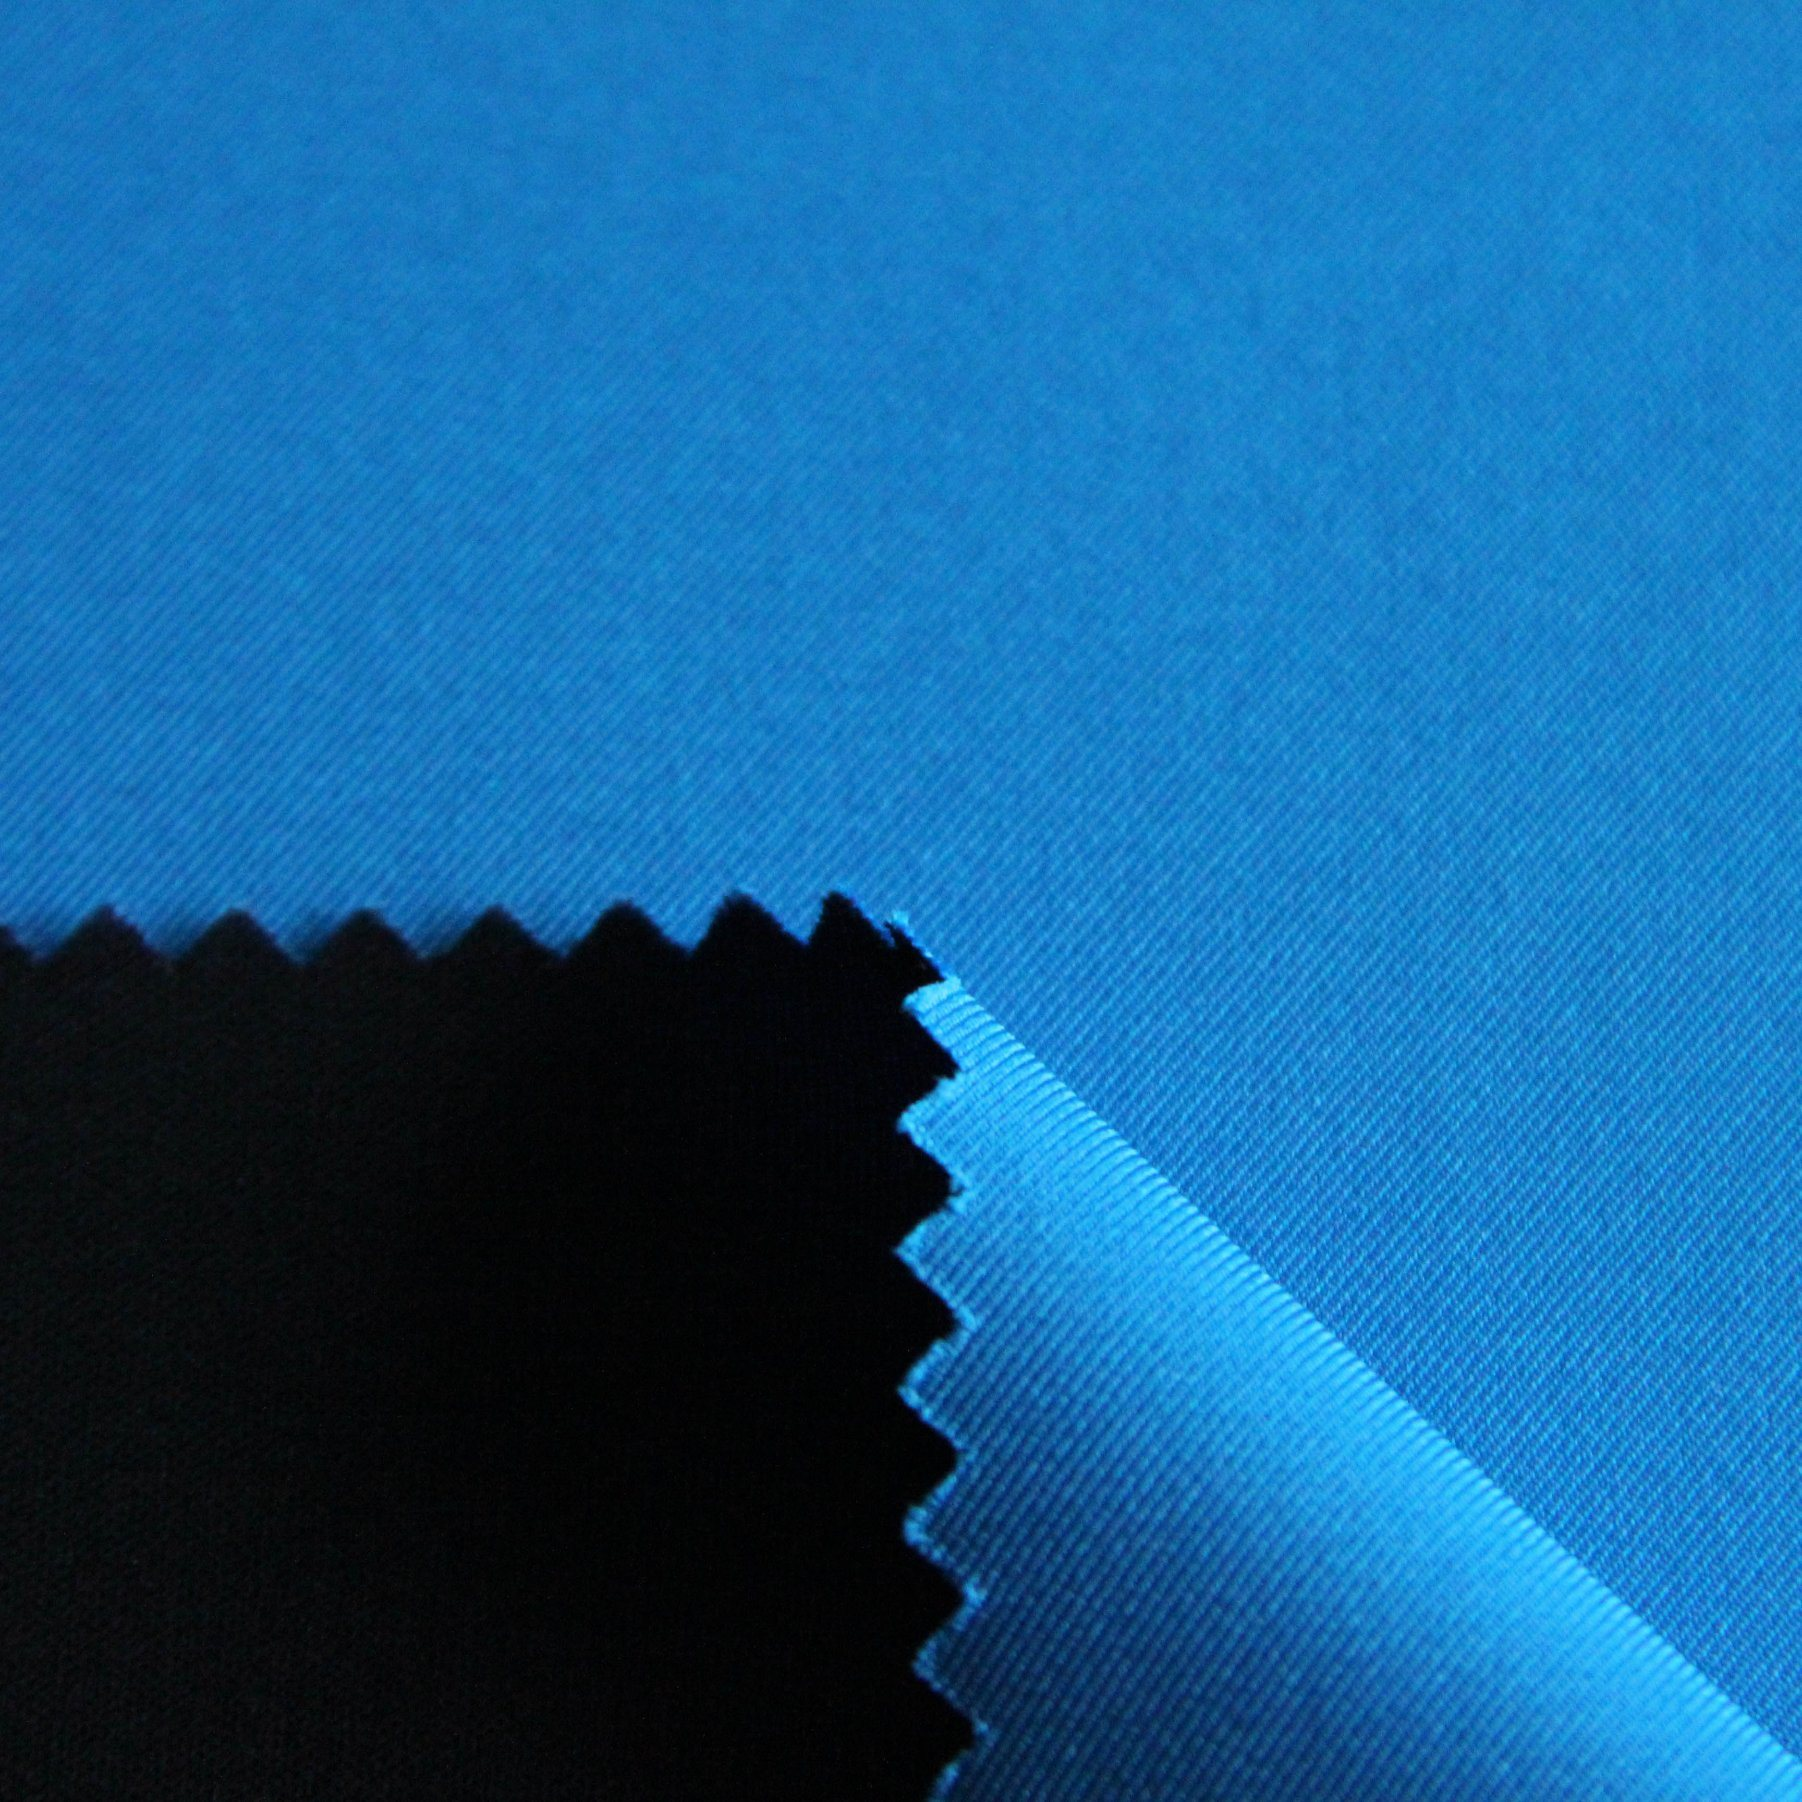 Waterproof Polyester Woven 75D Twill TPU Laminate 10K/5K Mesh Fabric for Jacket/Wind Jacket/Uniform pictures & photos